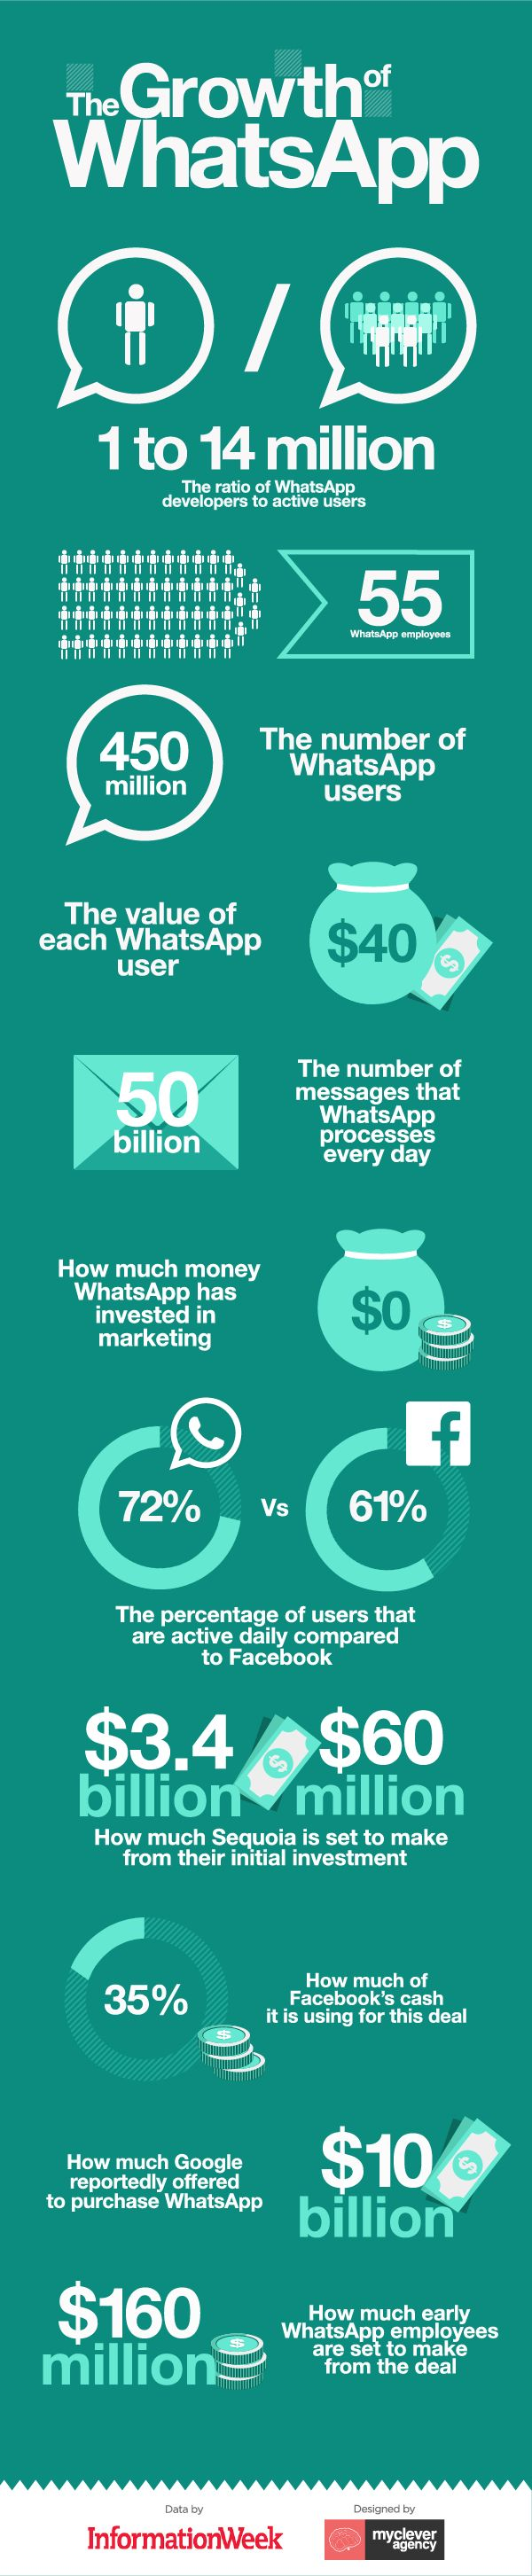 The Growth of WhatsApp Infographic